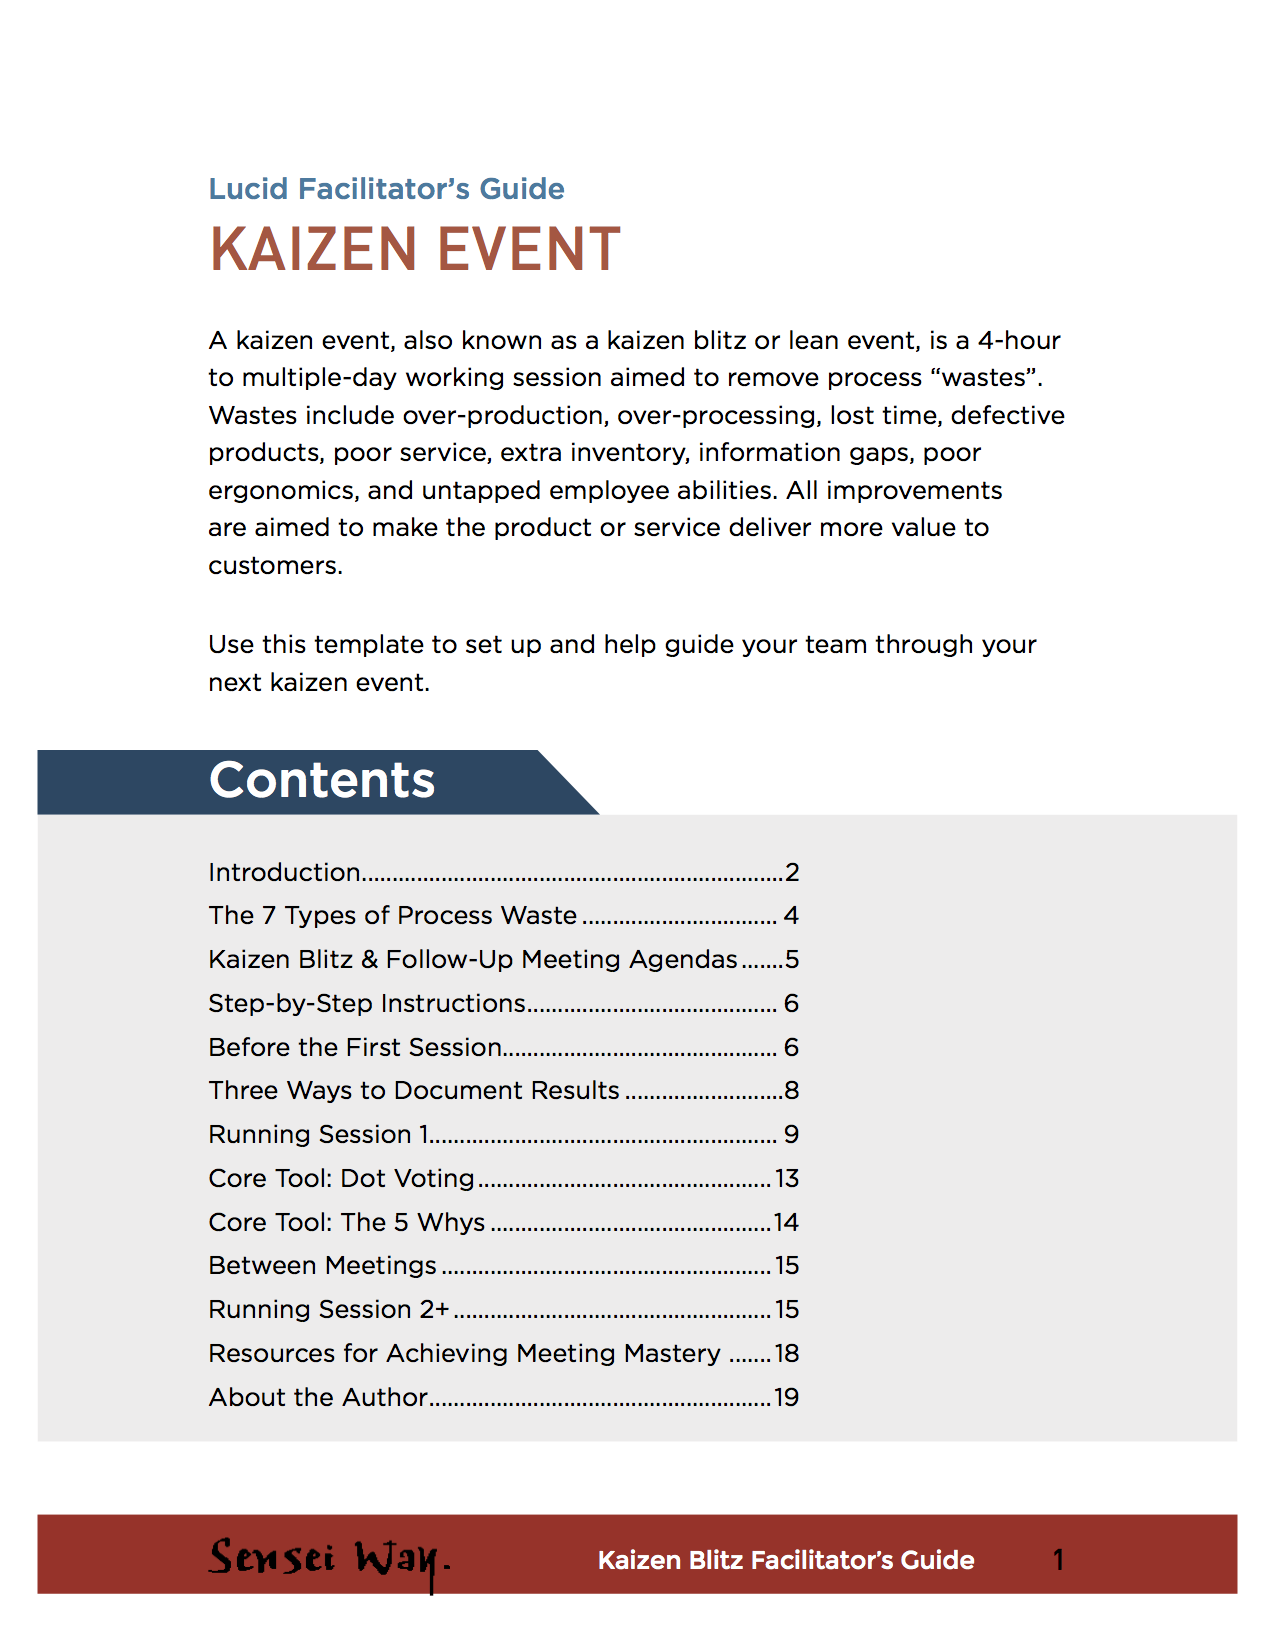 Facilitator Guide Template | Kaizen Event Lucid Meetings